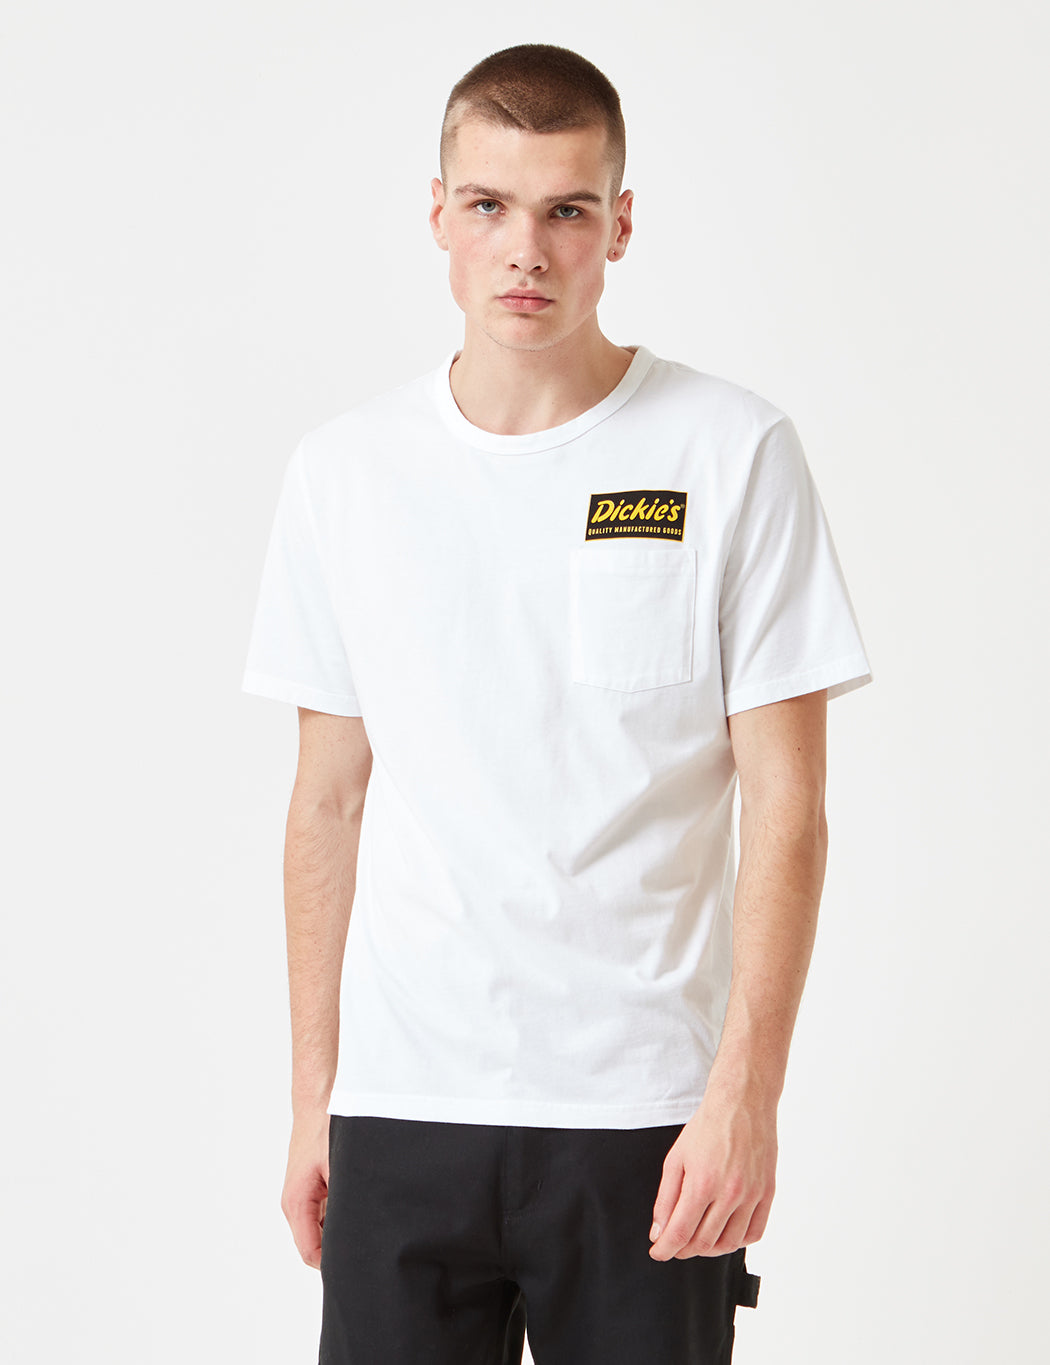 Dickies Franklin Park T-Shirt - White